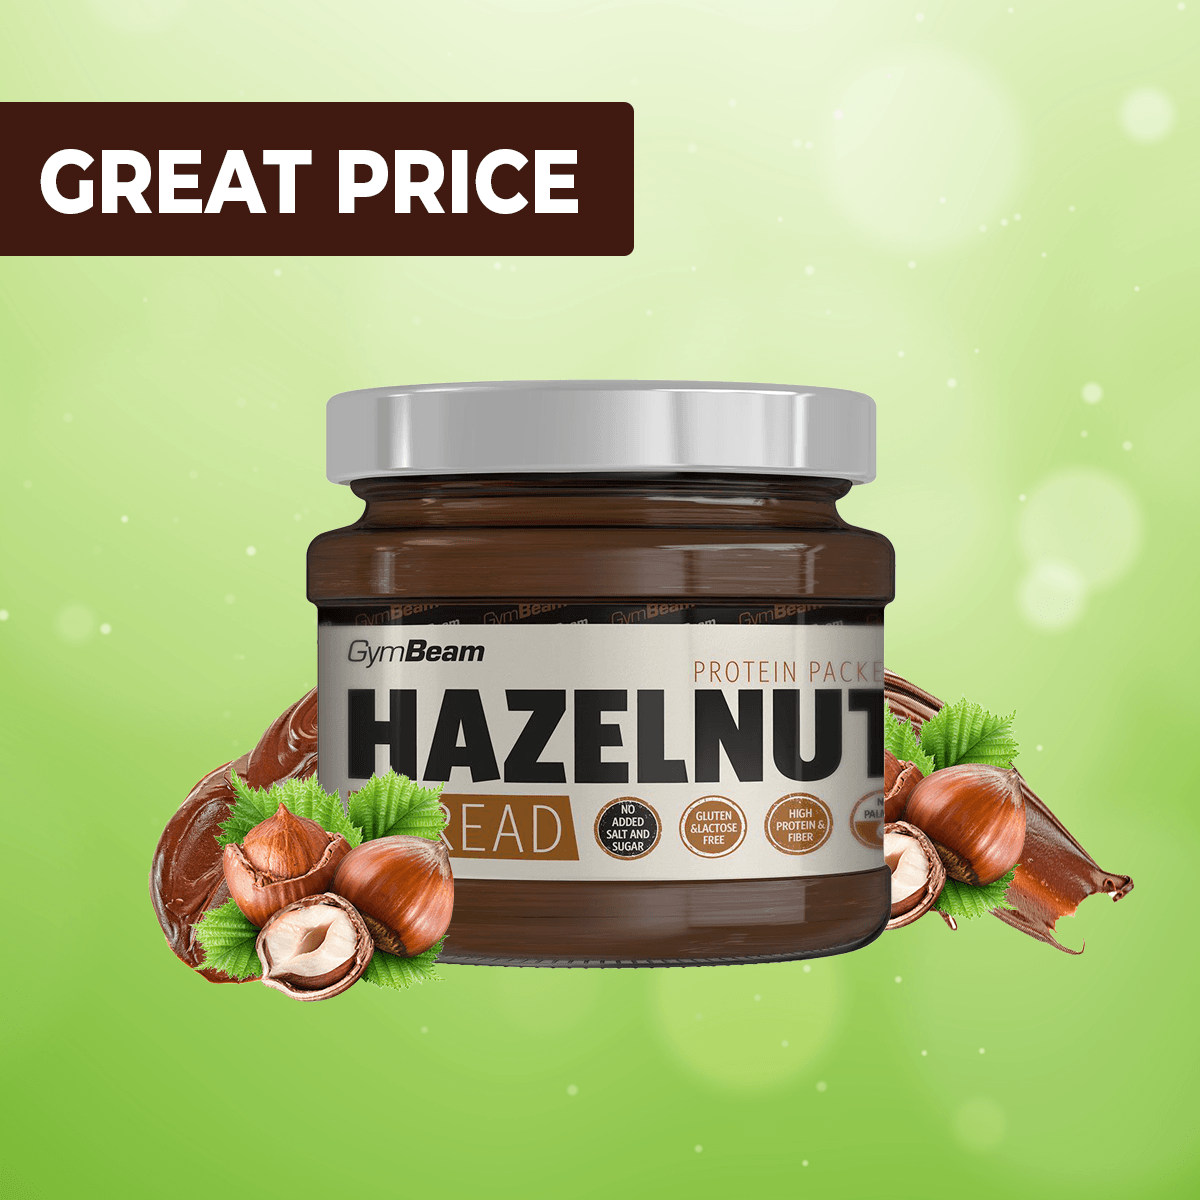 Hazelnut Spread - GymBeam